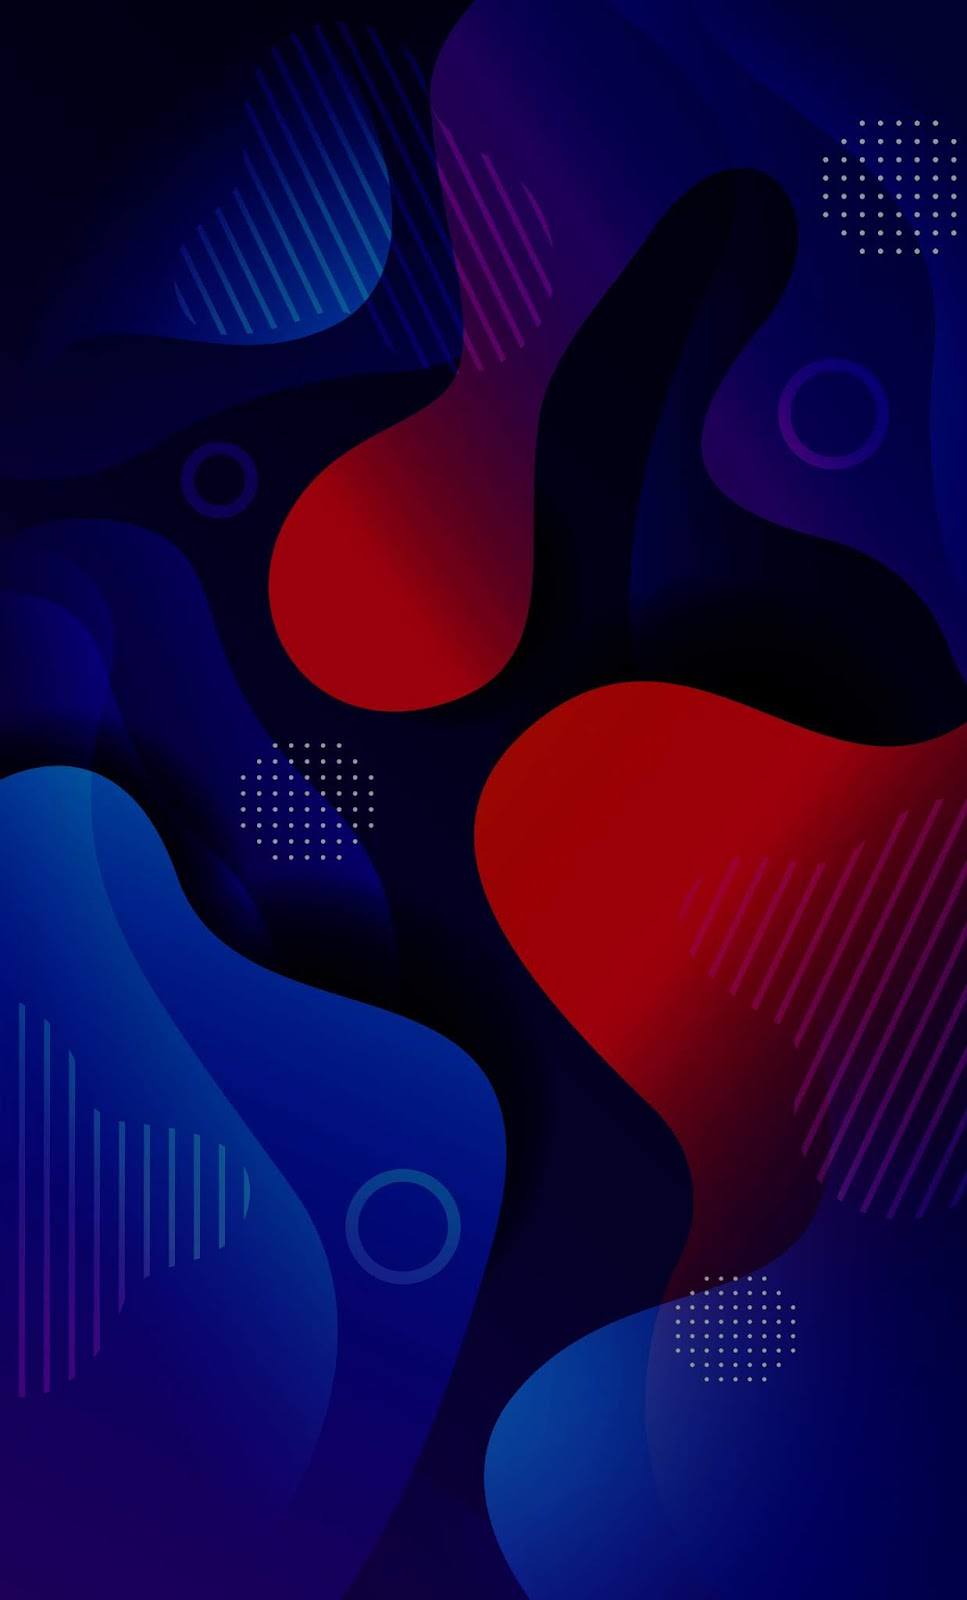 Abstract Wallpaper For Cell Phone 1814 X 3000 Cool